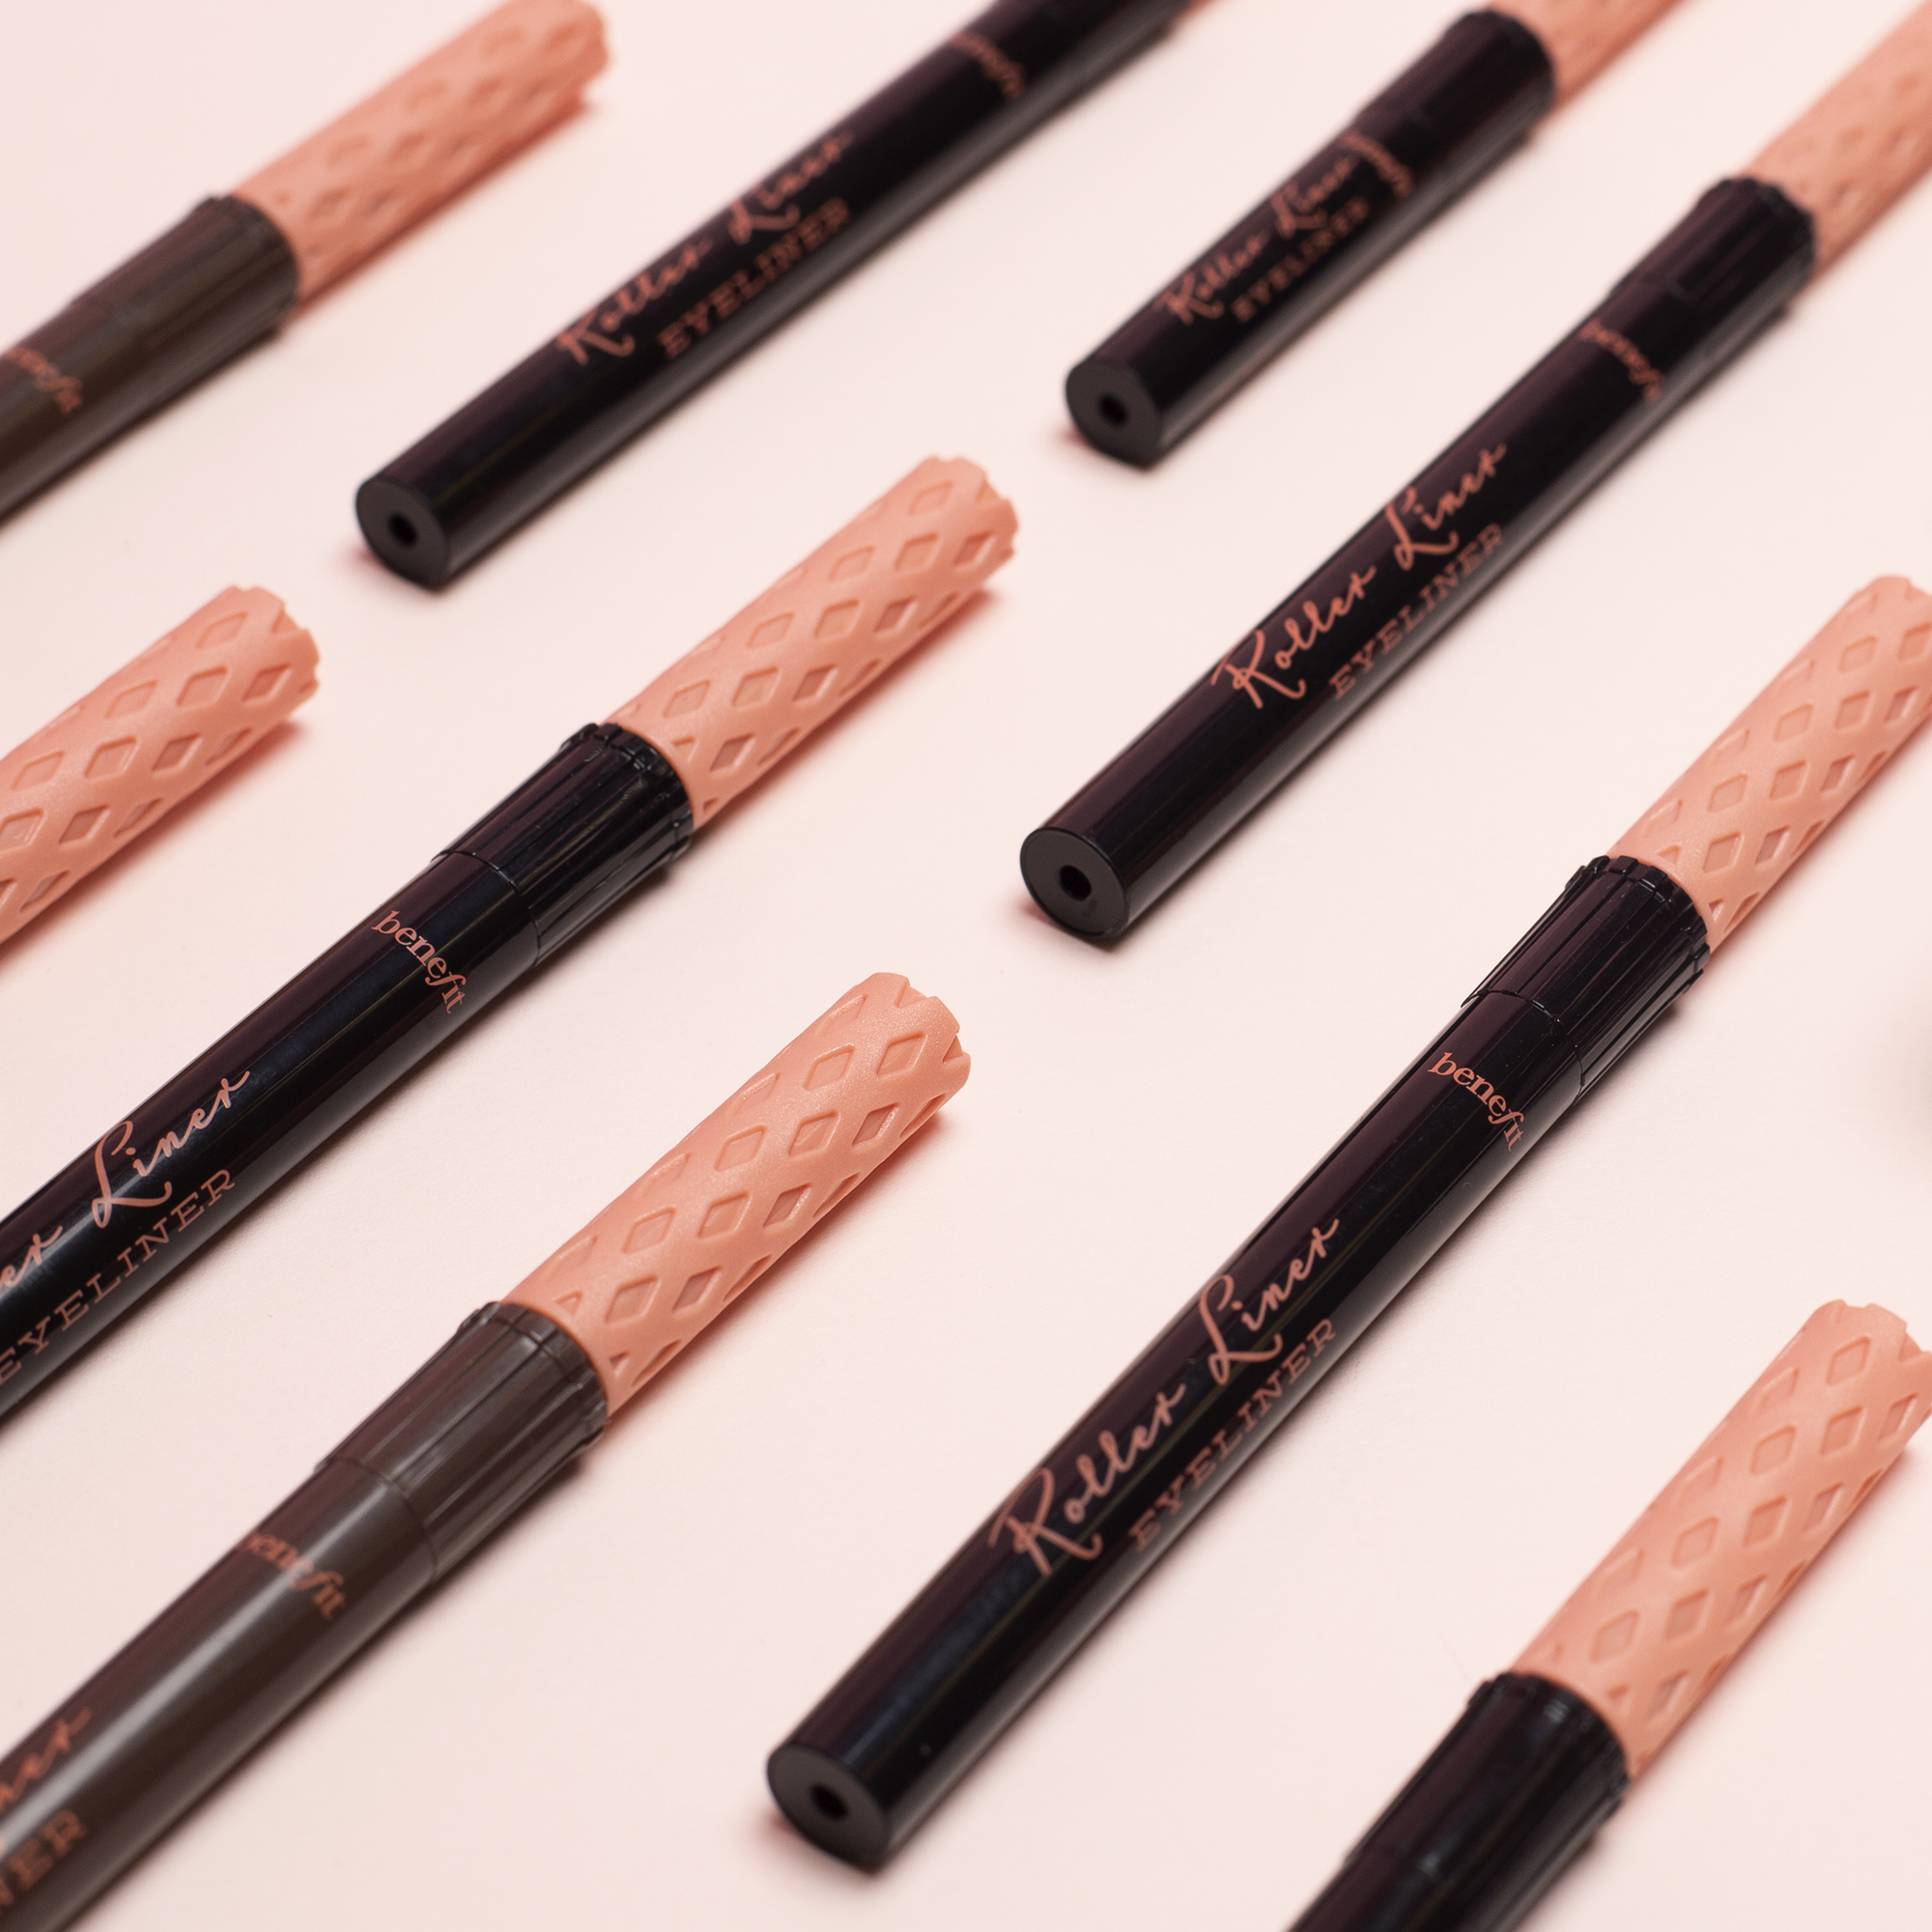 Benefit Roller Liner Eyeliner in Black Matte liquid